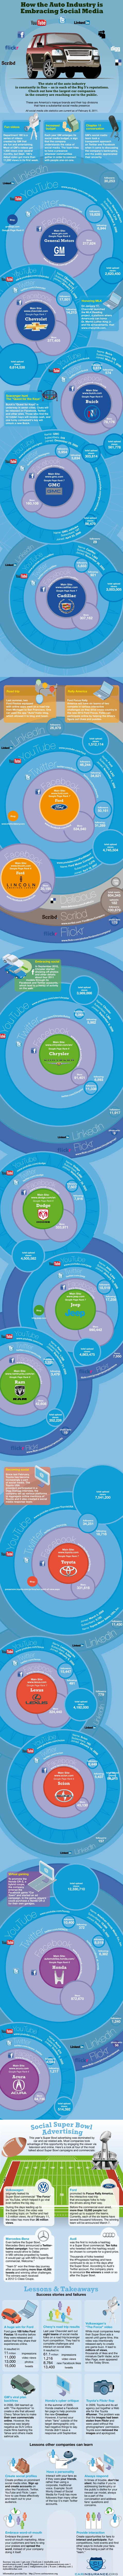 The following Automotive Social Media Infographic gives us some historical perspective on where the car business was with our use of social media back when we were headed into 2012